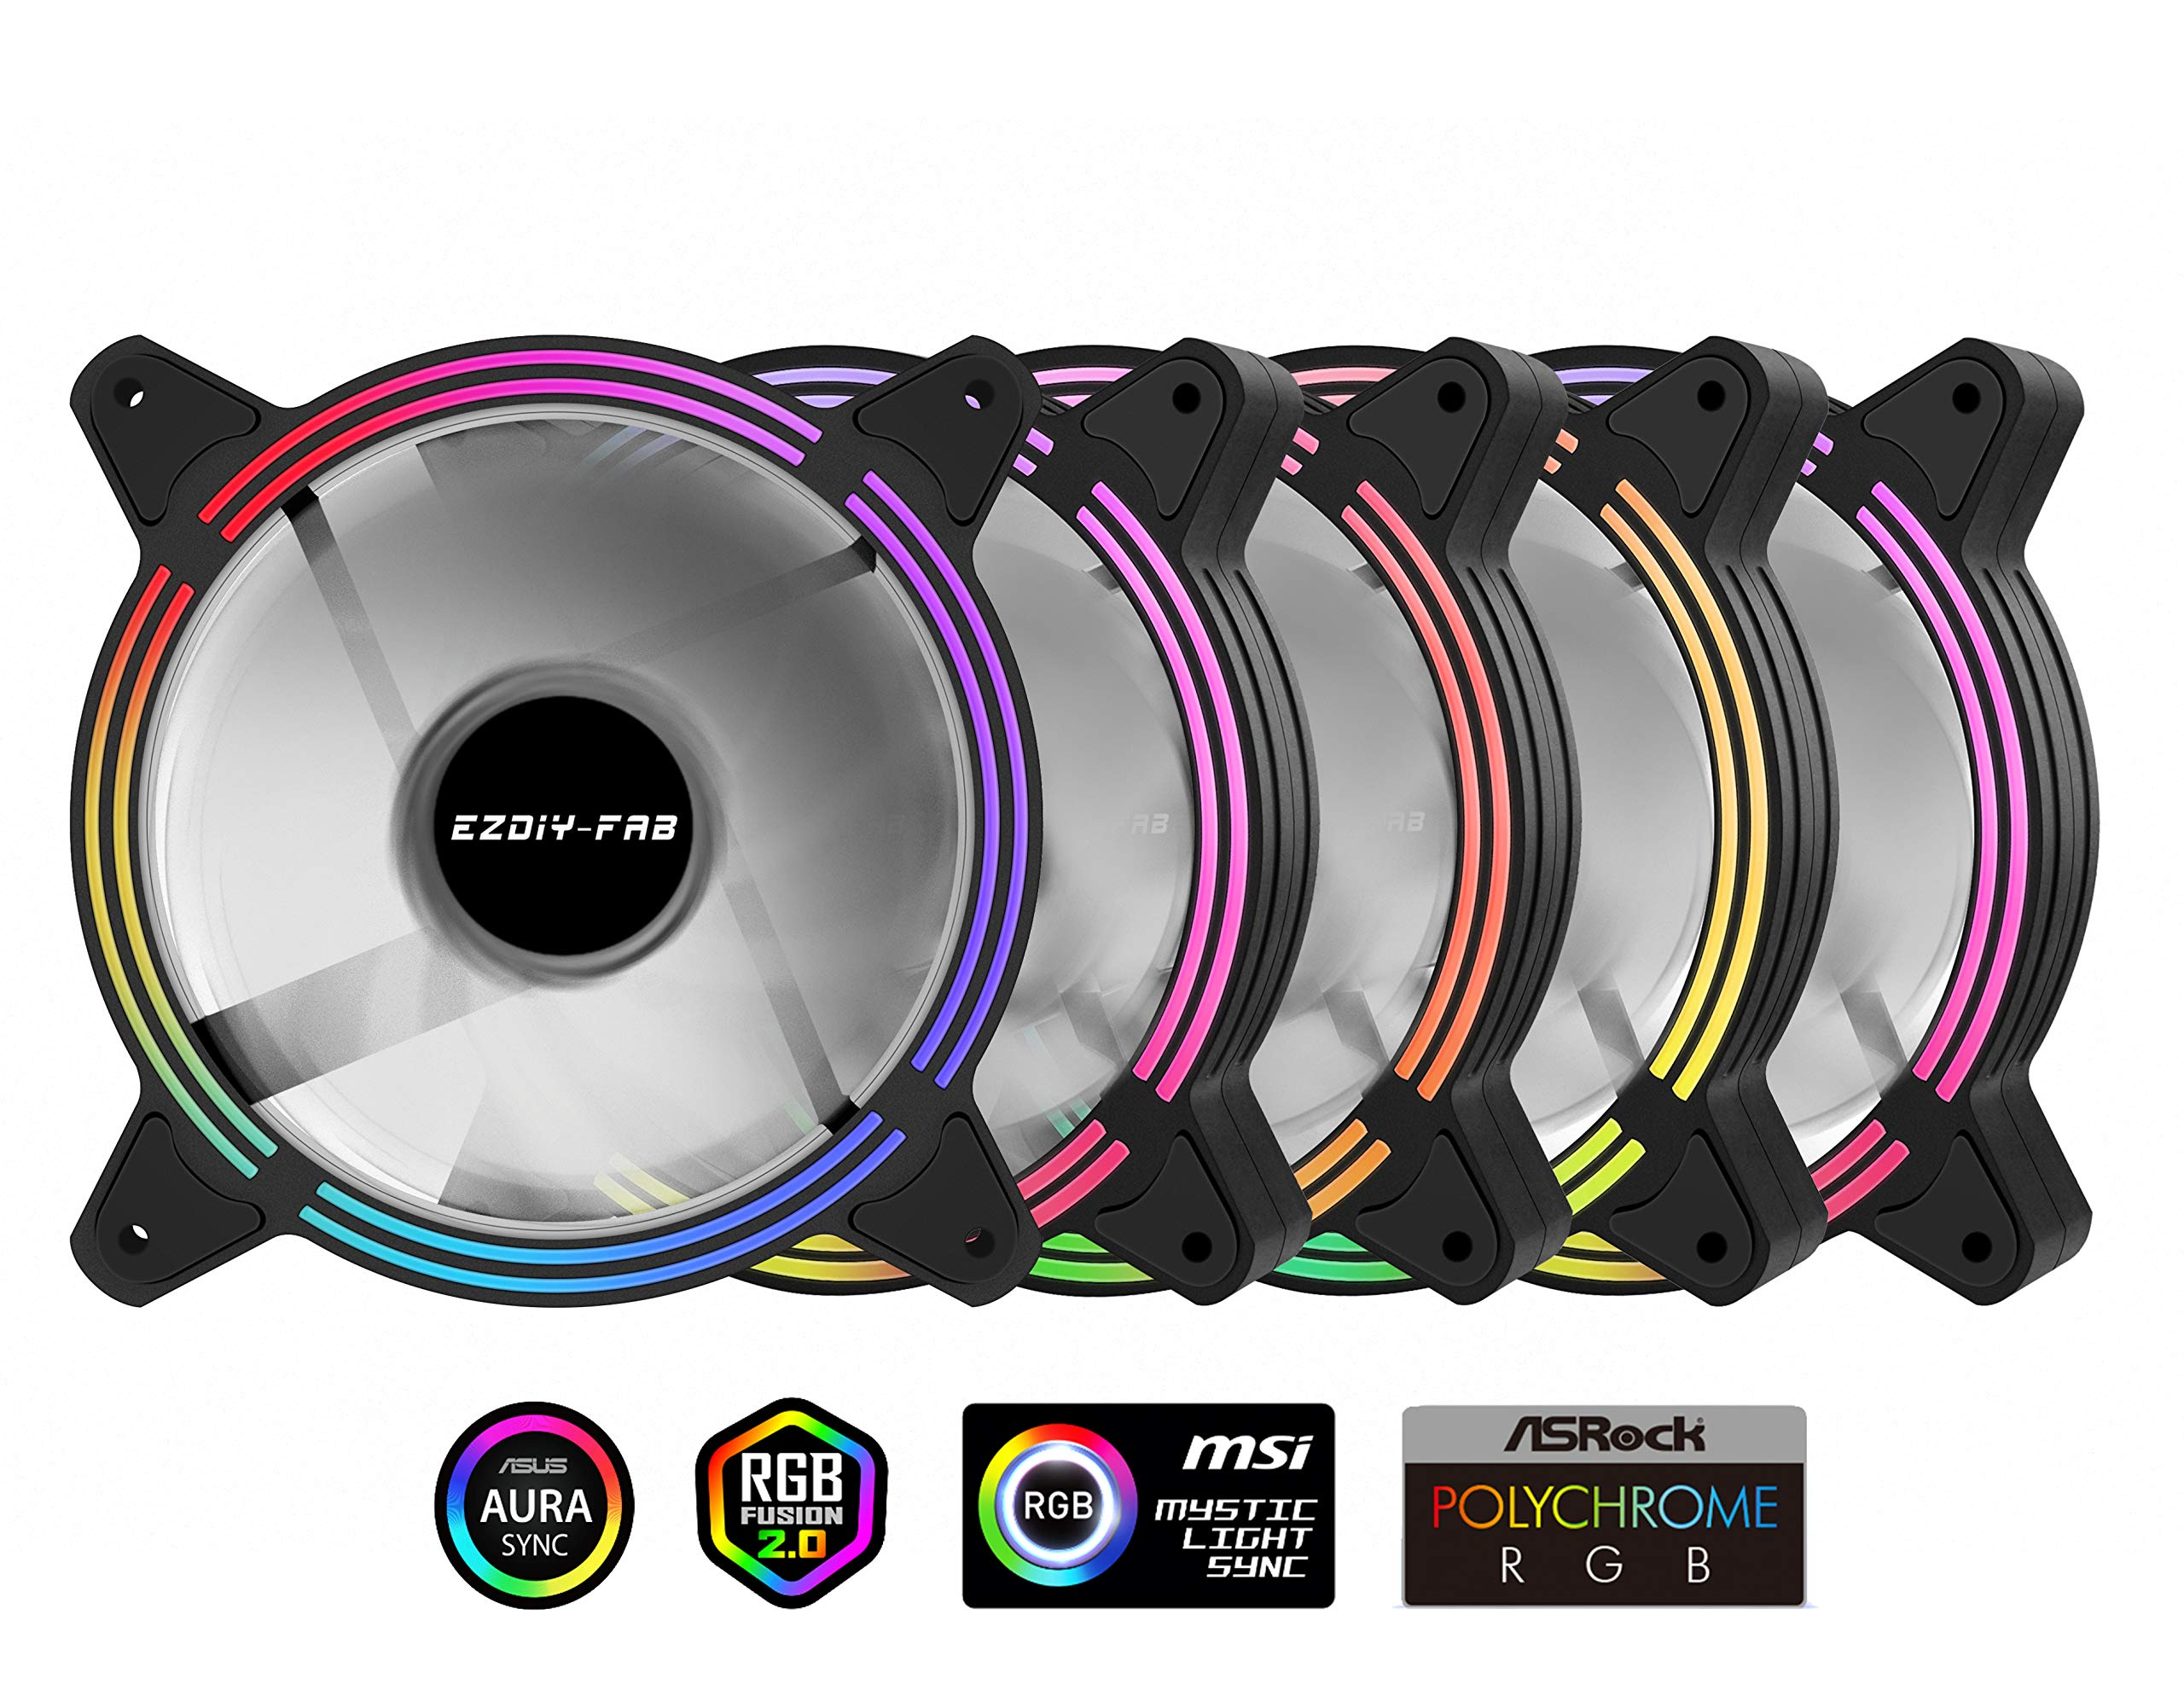 EZDIY-FAB 5-Pack 120mm Dual Frame RGB PWM Fans for PC Case,Addressable RGB Case Fan with Fan Hubs,CPU Cooling Fan, 5V ARGB 3 pin Motherboard Sync,Compatible with ASUS Aura Sync